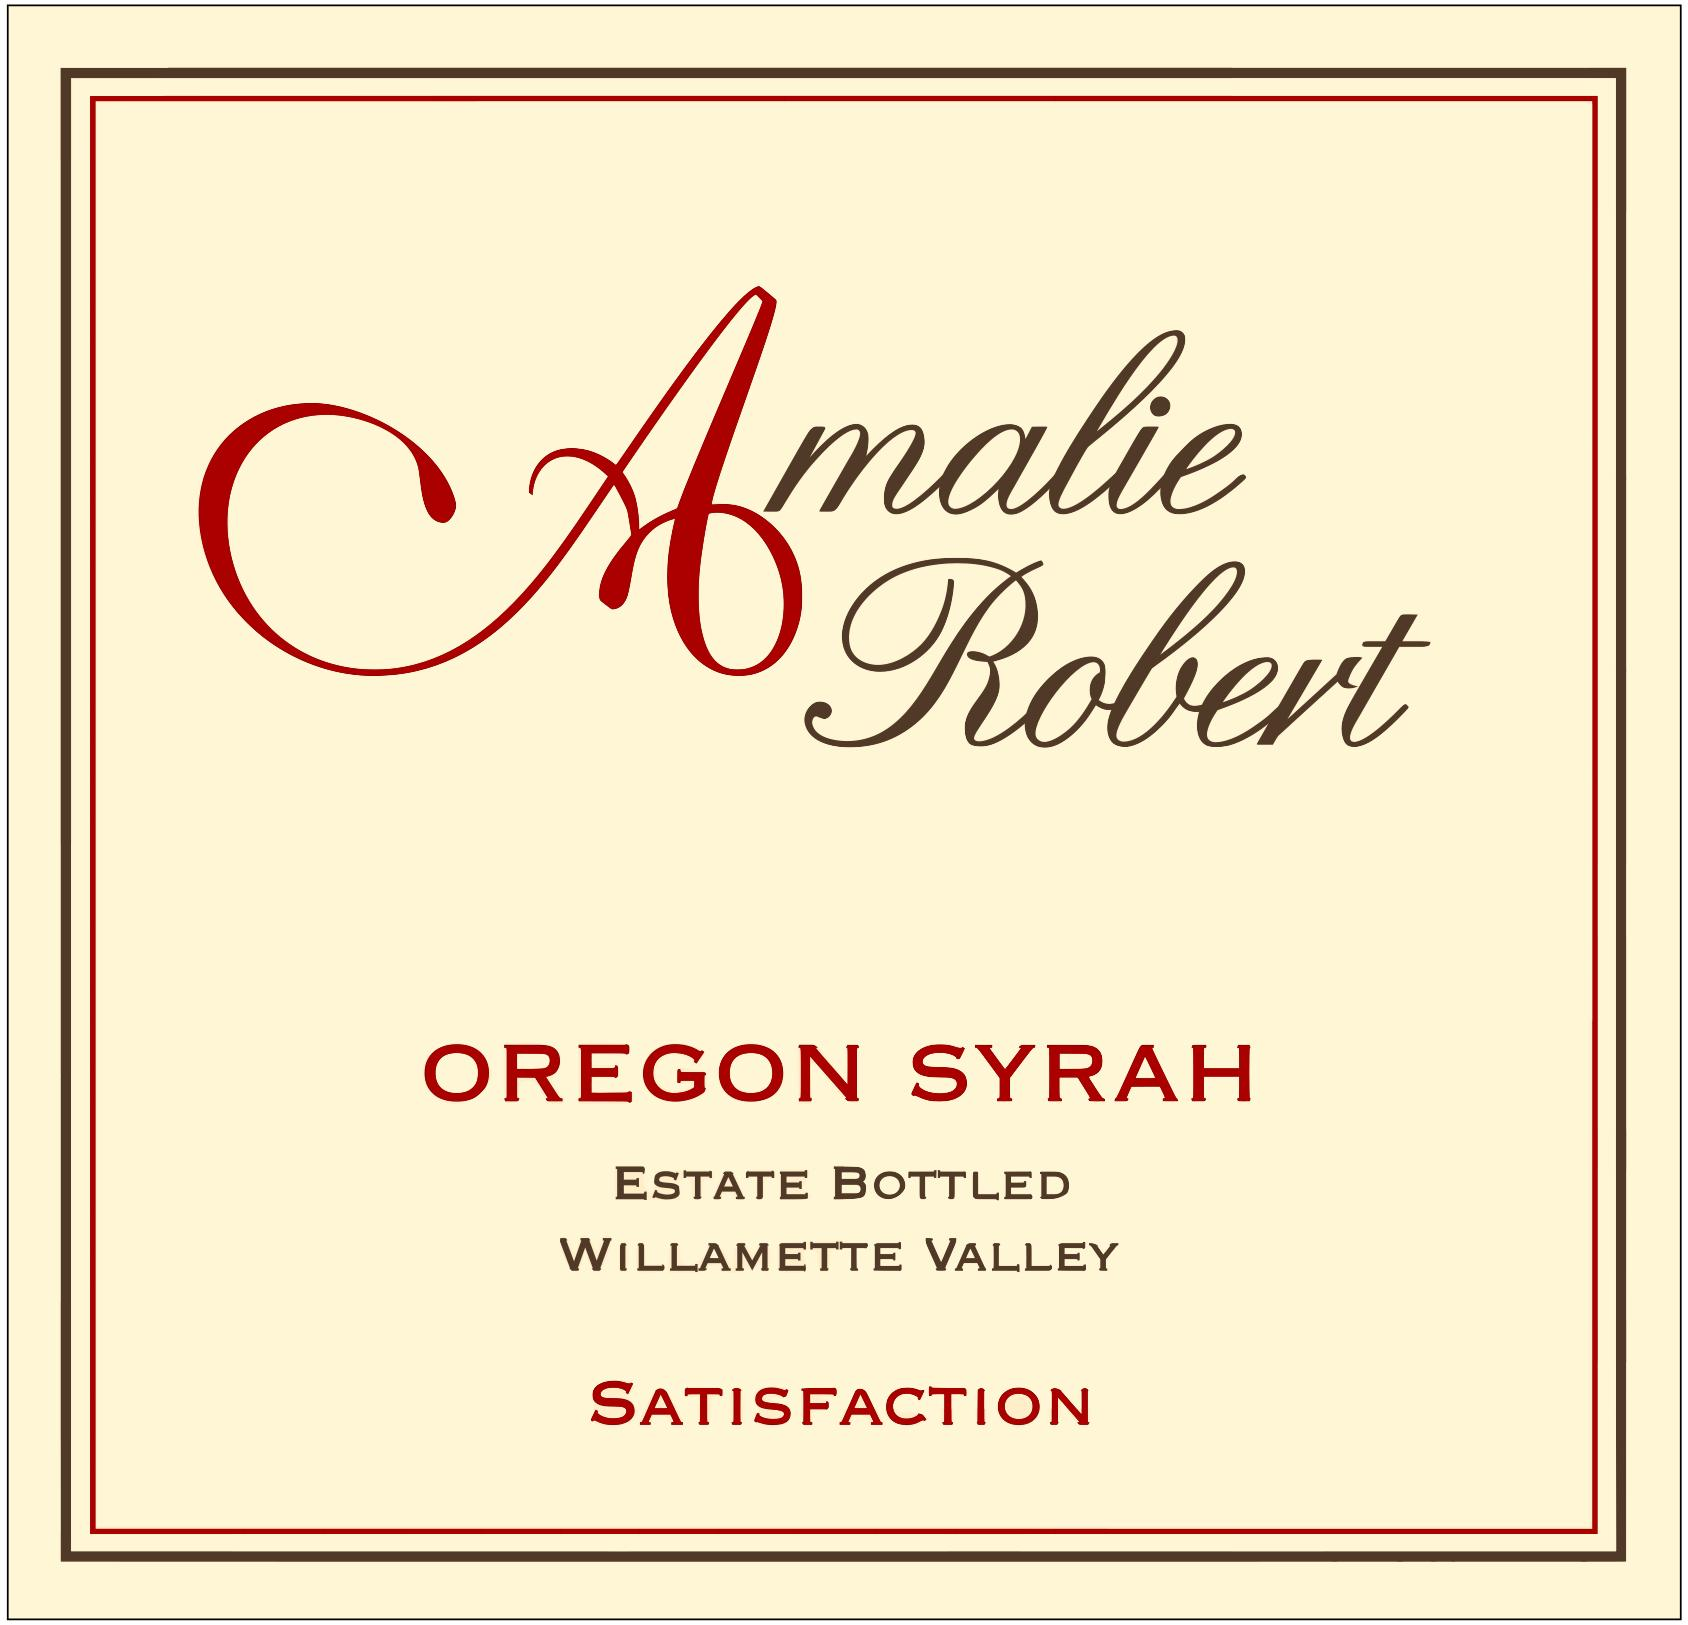 2014 Satisfaction Syrah - 93 pts Vinous THUMBNAIL